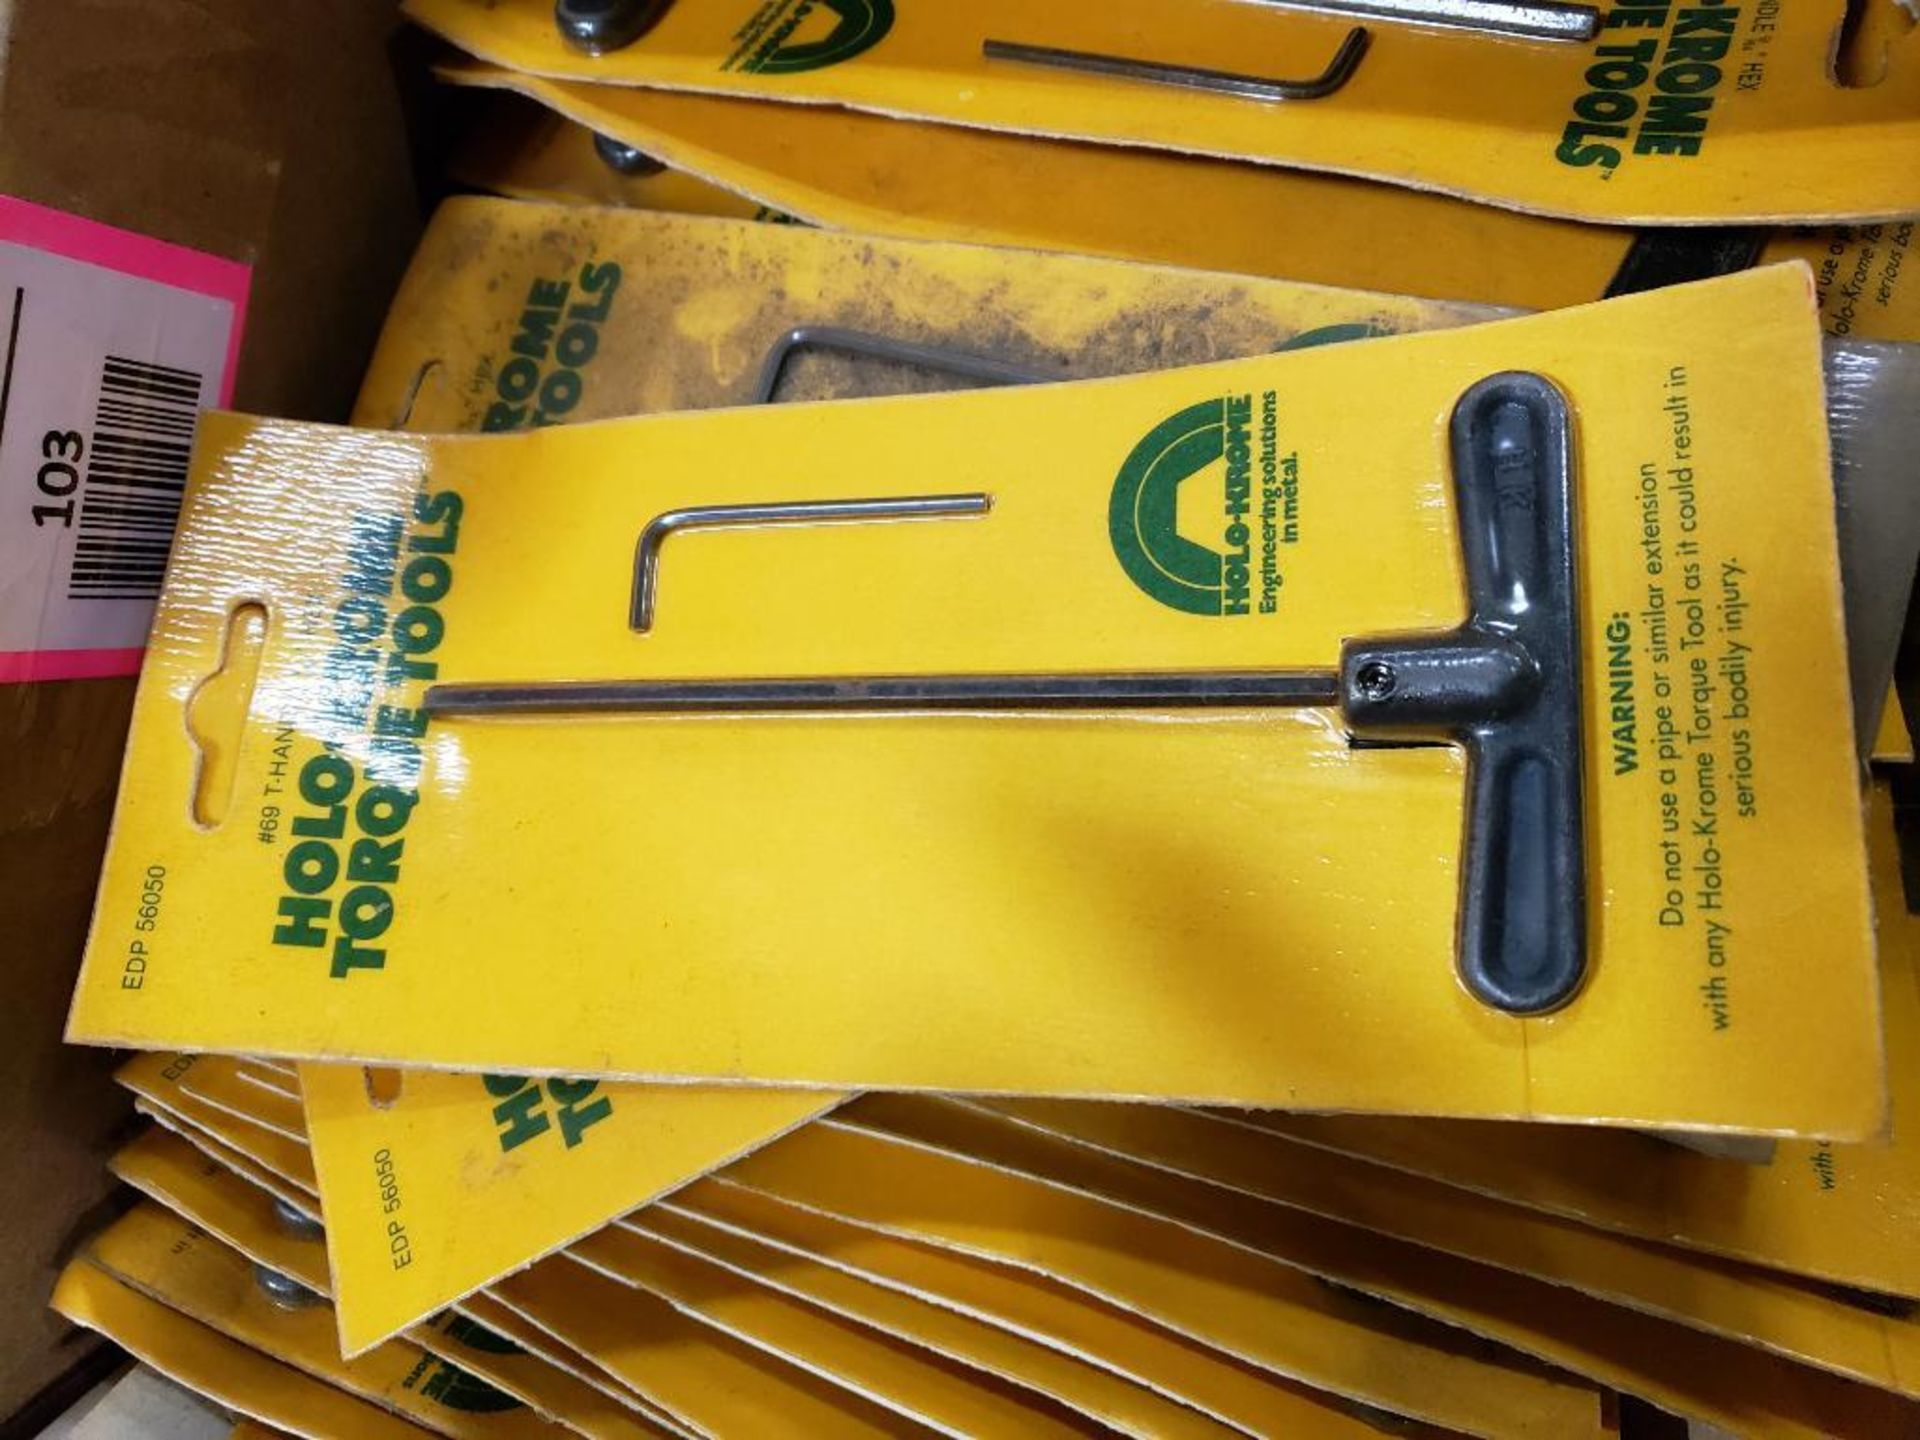 Large Qty of Holo-Krome allen wrenches. New. - Image 2 of 3